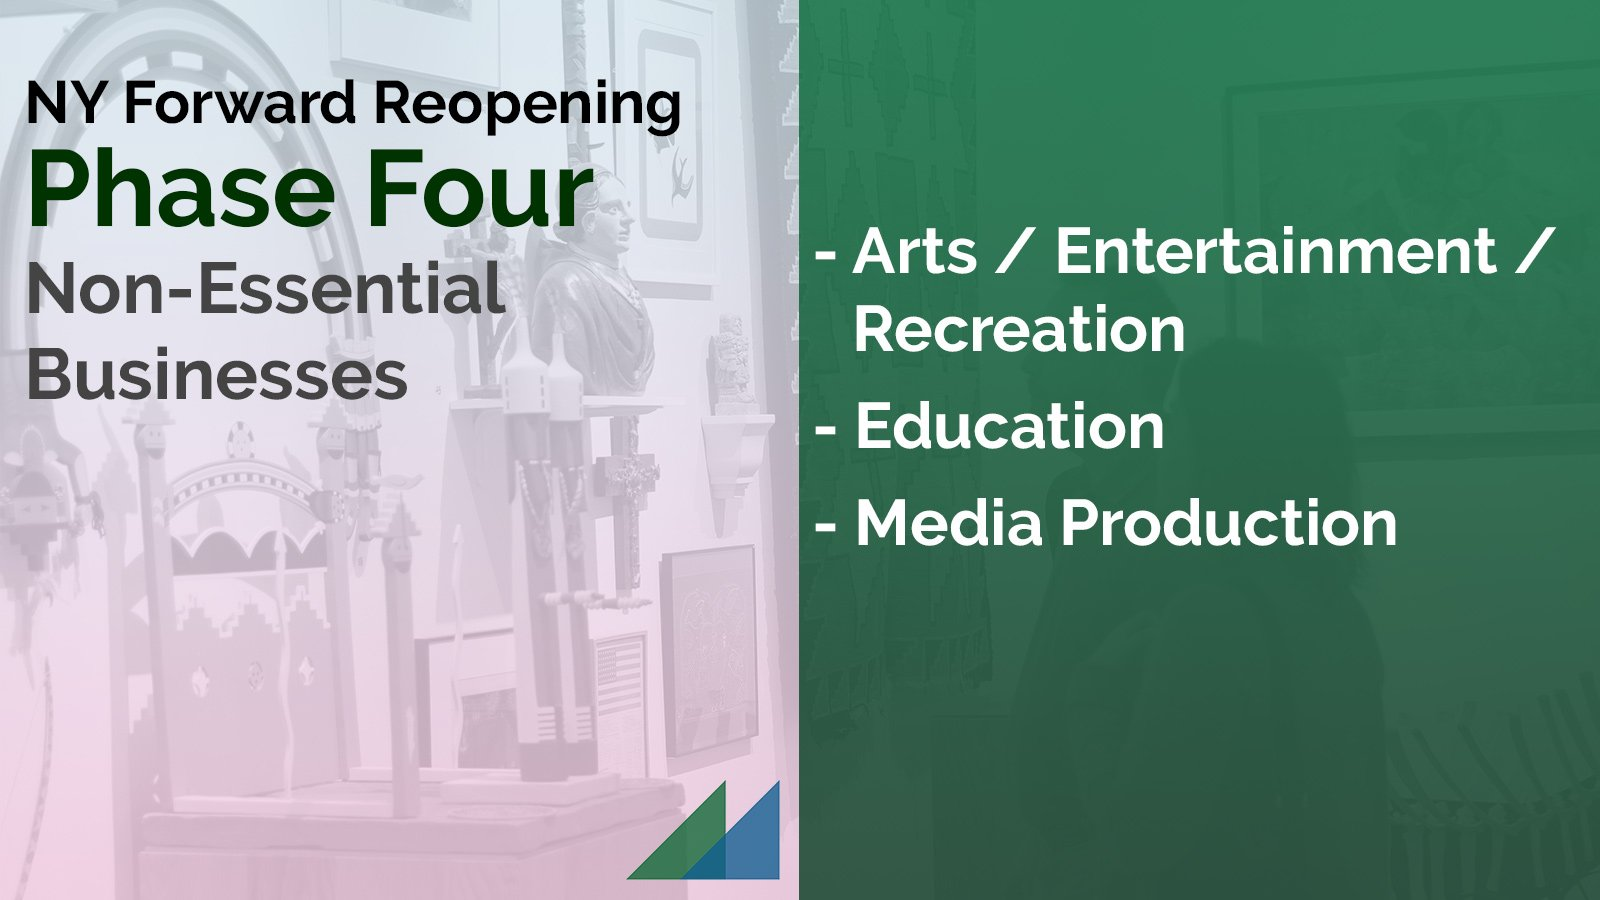 NY Forward Reopening Phase Four: Arts / Entertainment / Recreation, Education, and Media Production